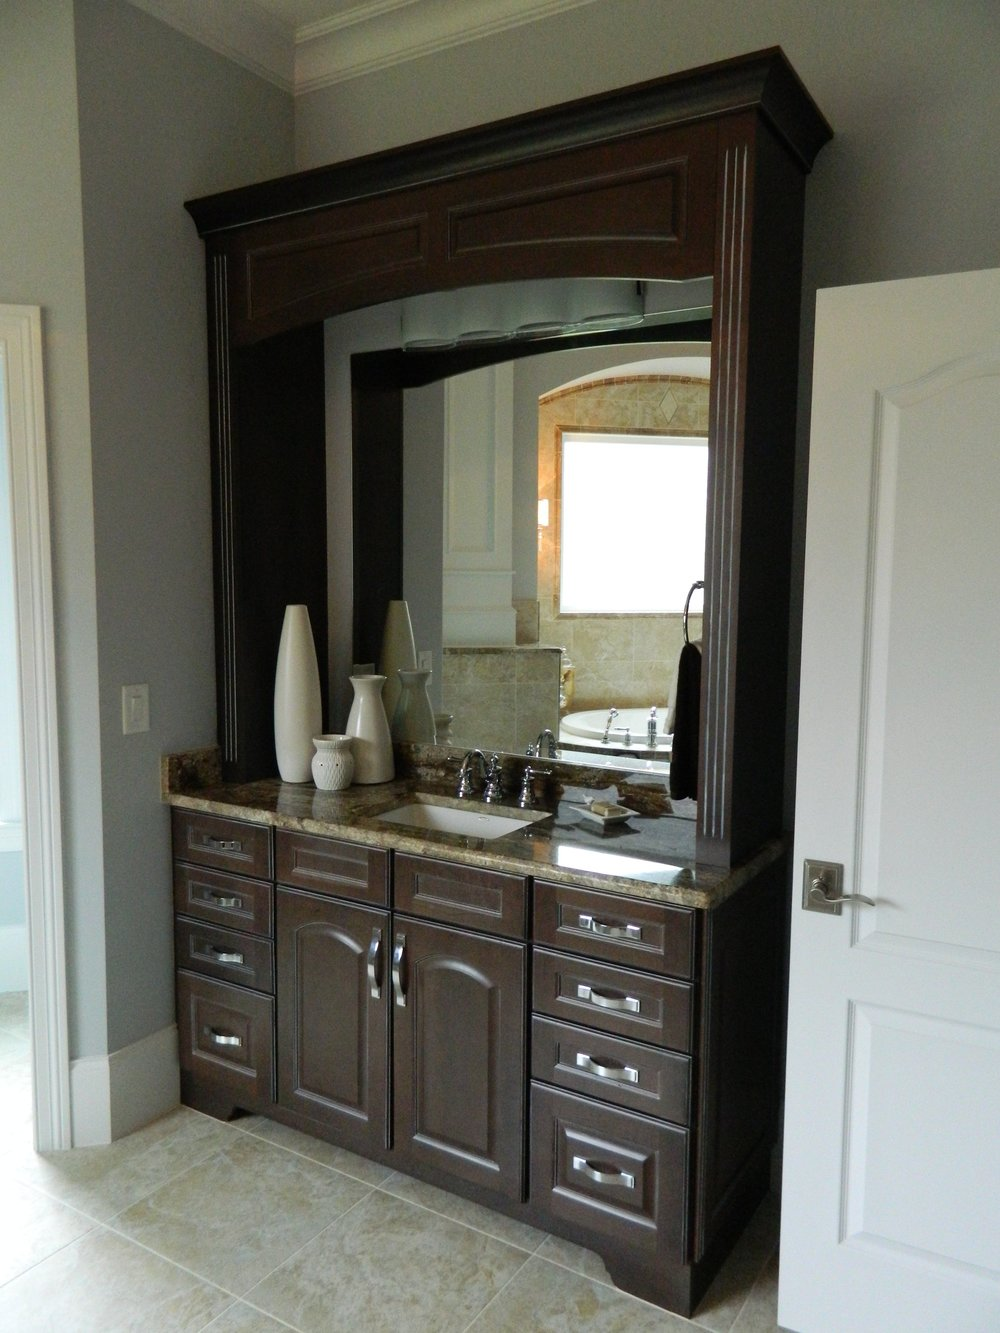 Stain grade vanity with decorative toekick, arched raised panel doors, upper fluted header detail and mirror.